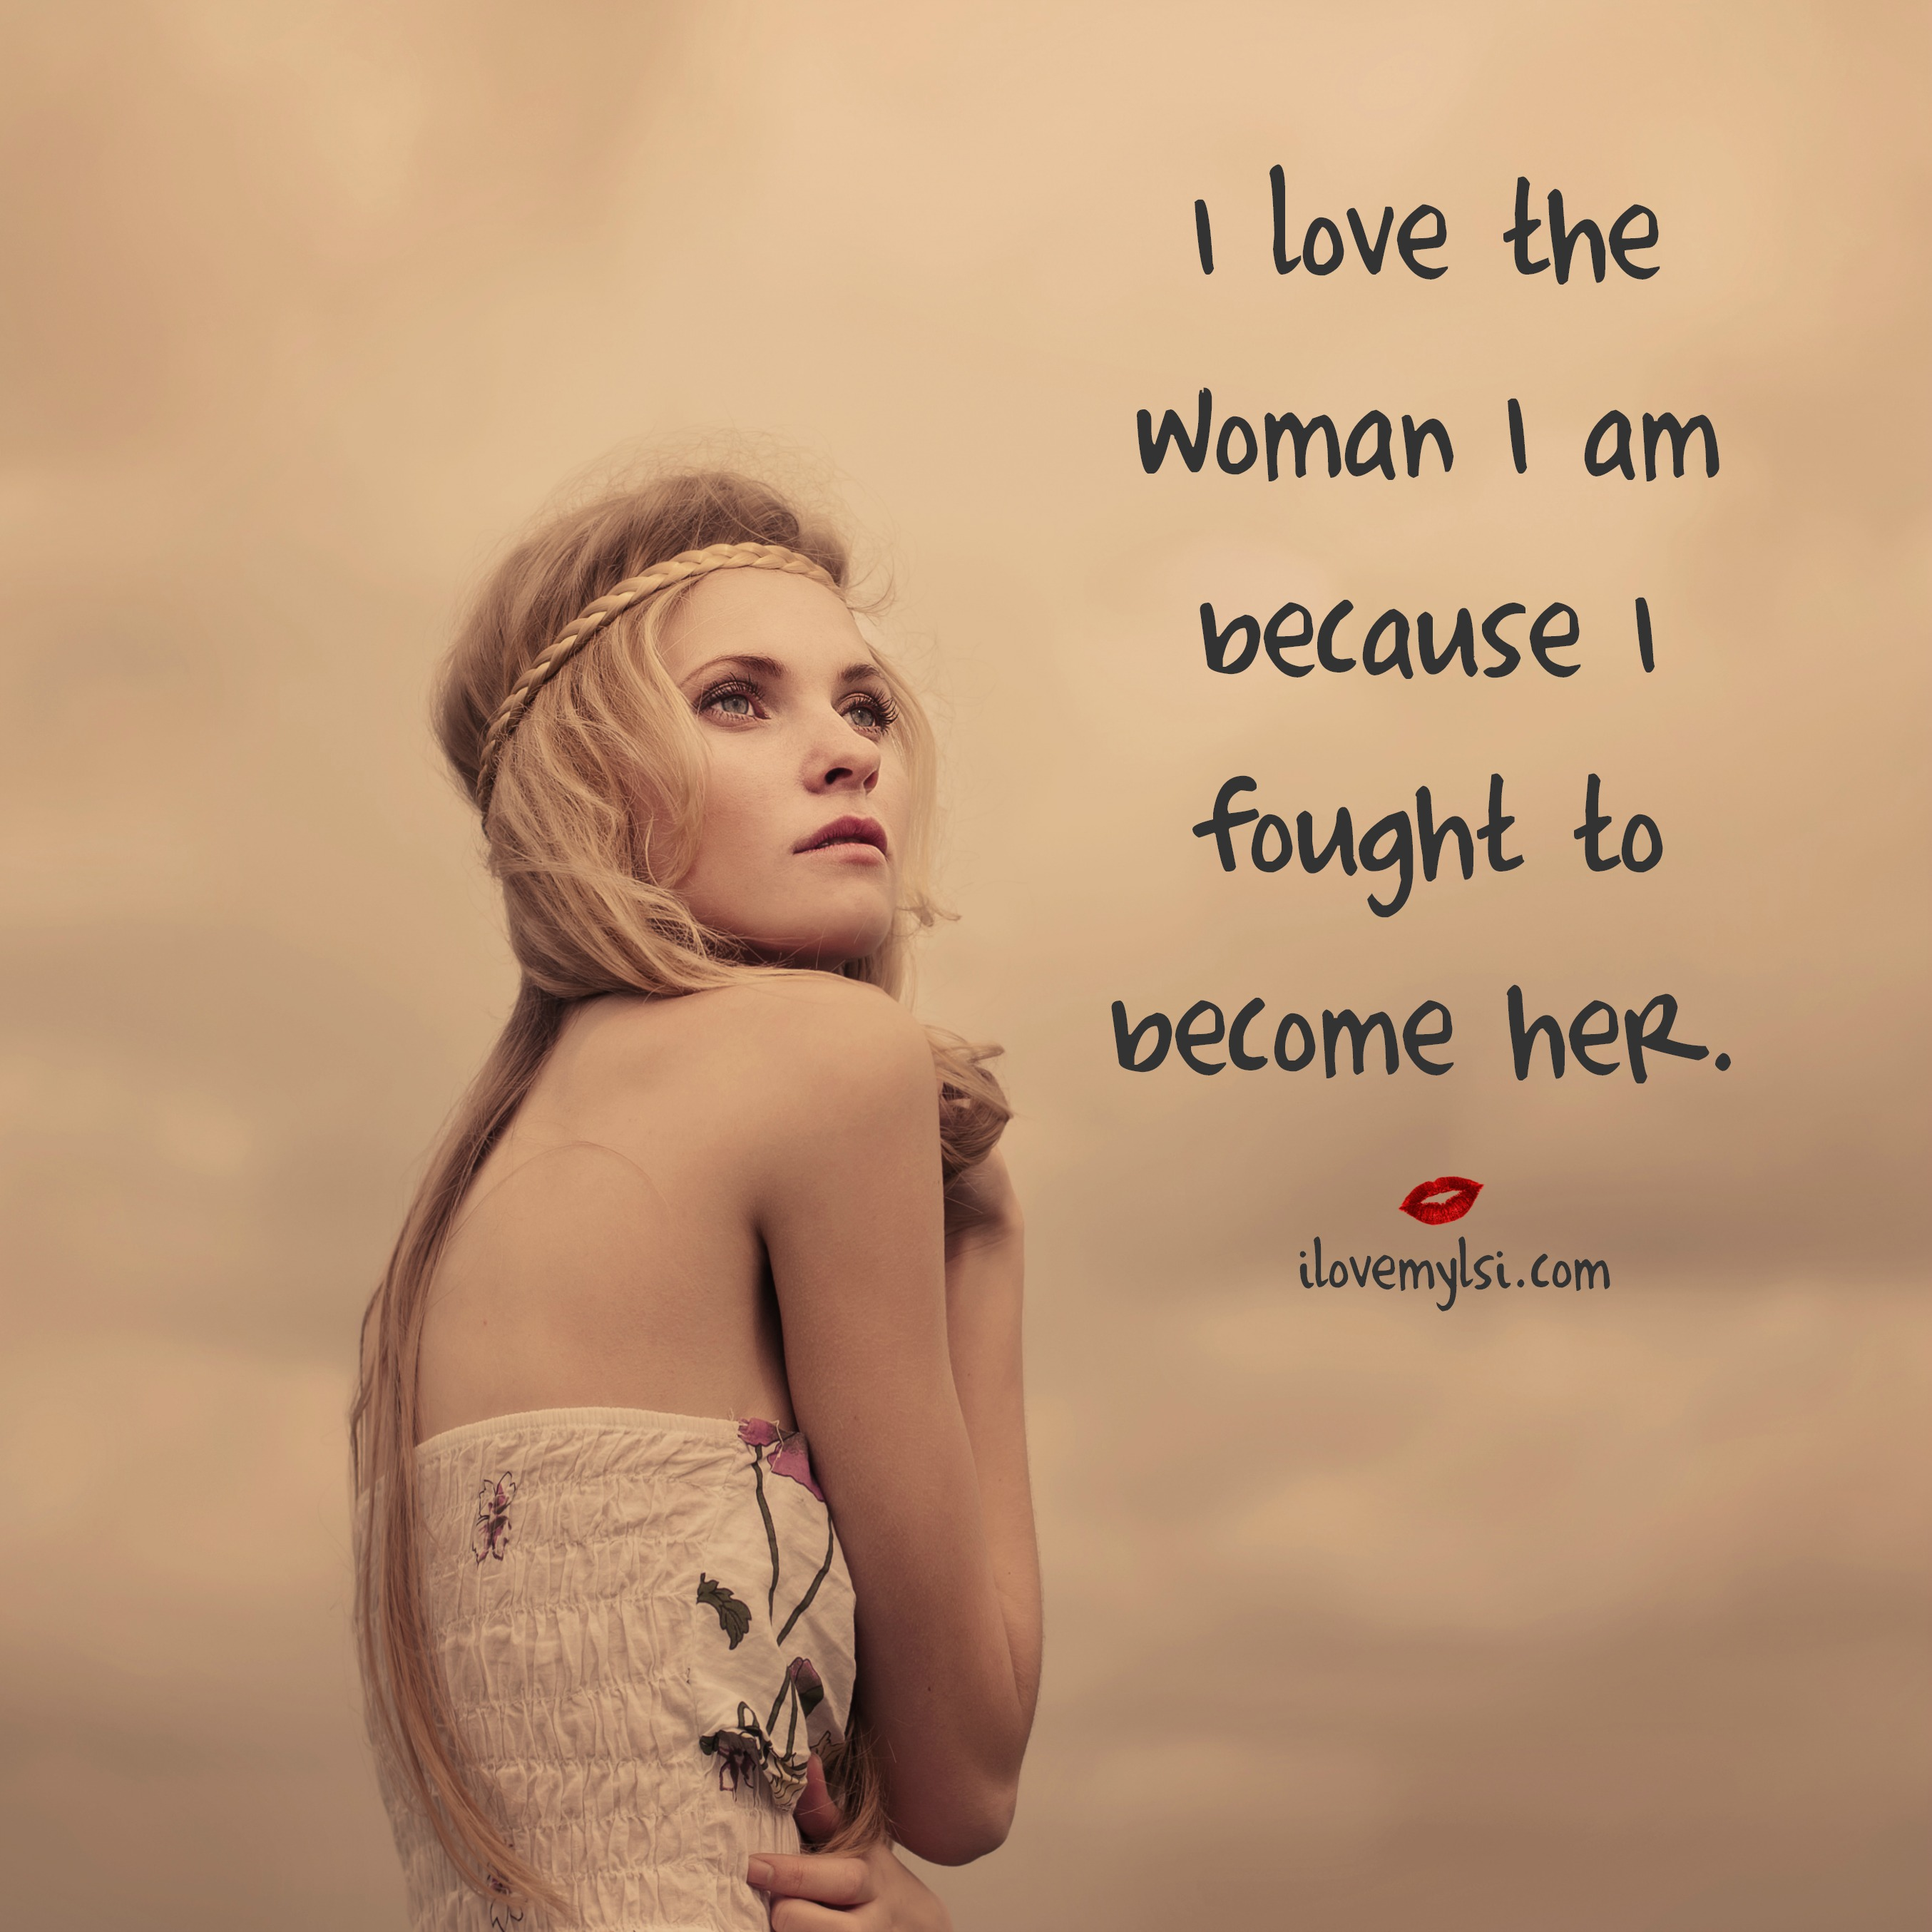 How To Love A Woman Quotes: Woman To Woman Love Quotes. QuotesGram